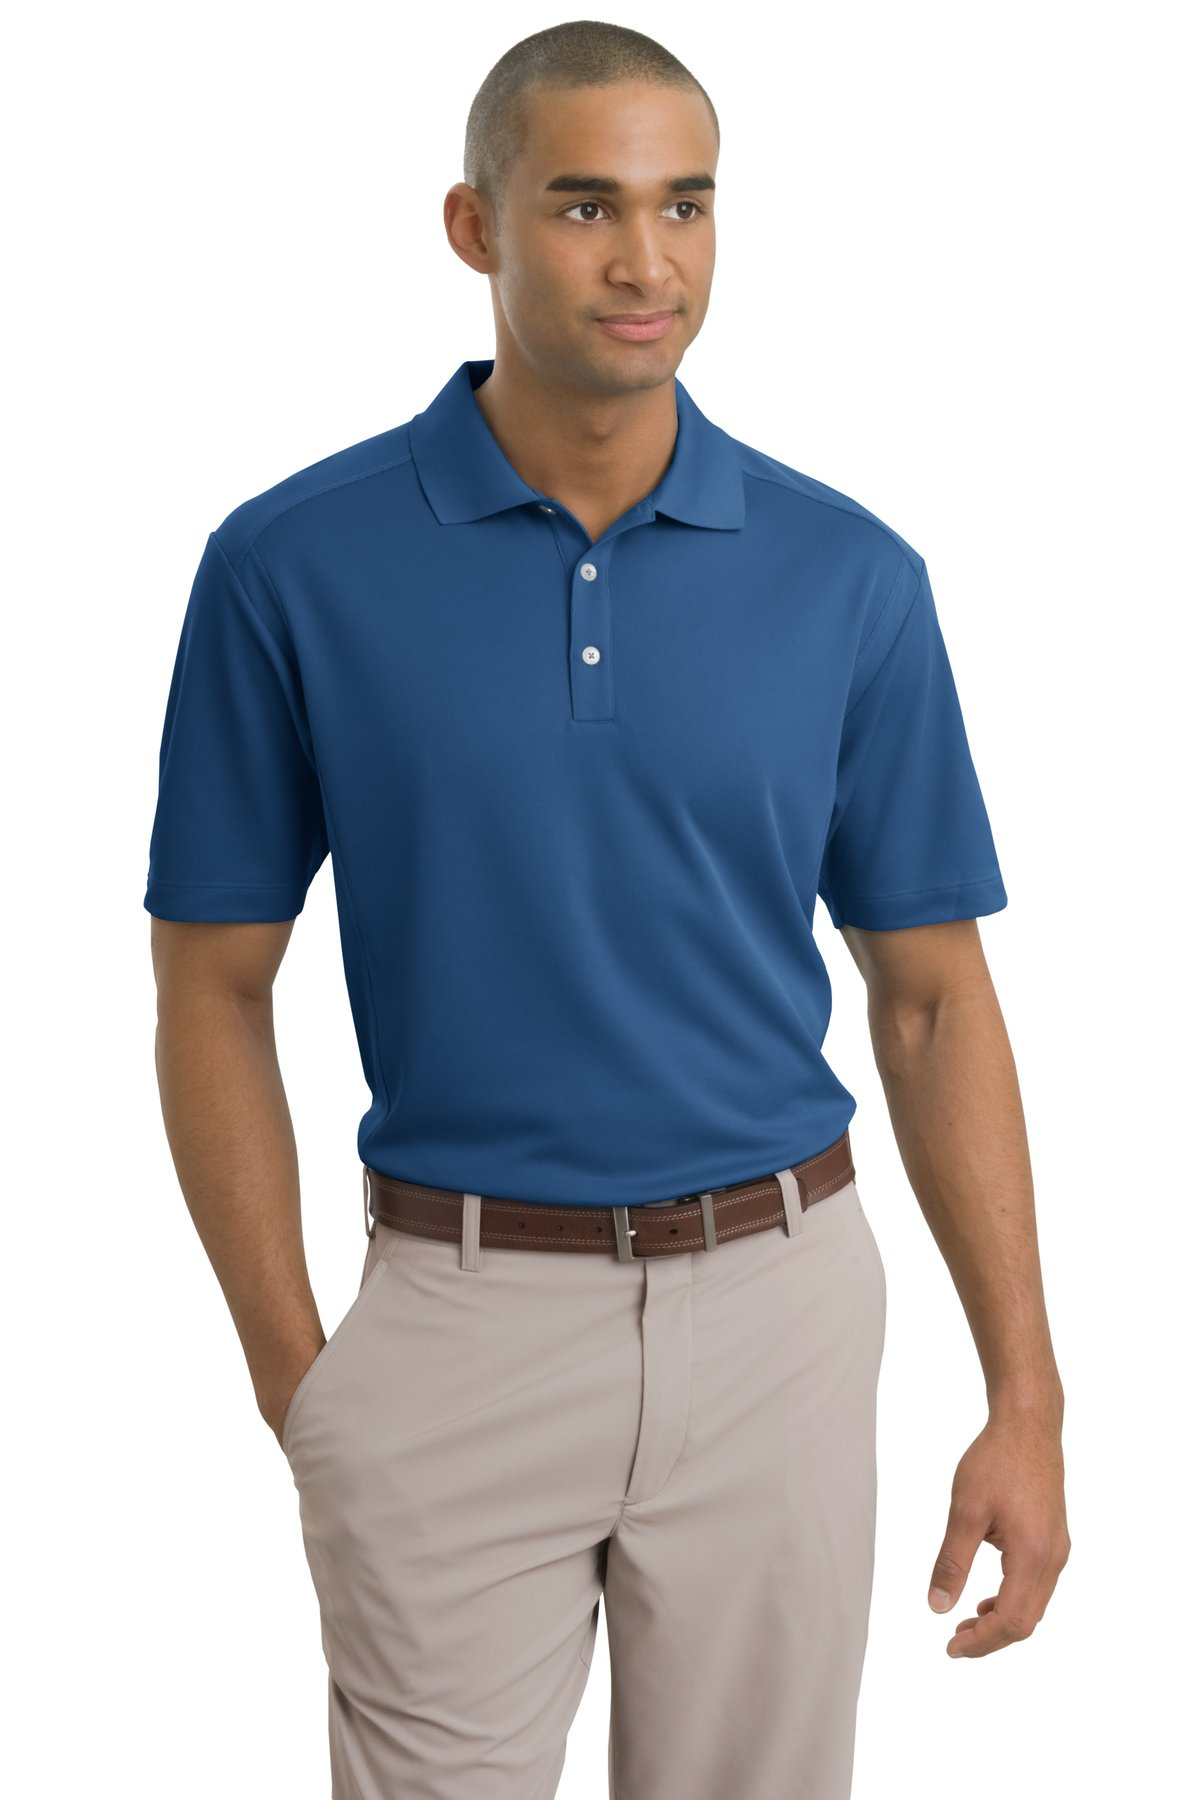 Nike Dri-FIT Classic Polo.  267020 - French Blue